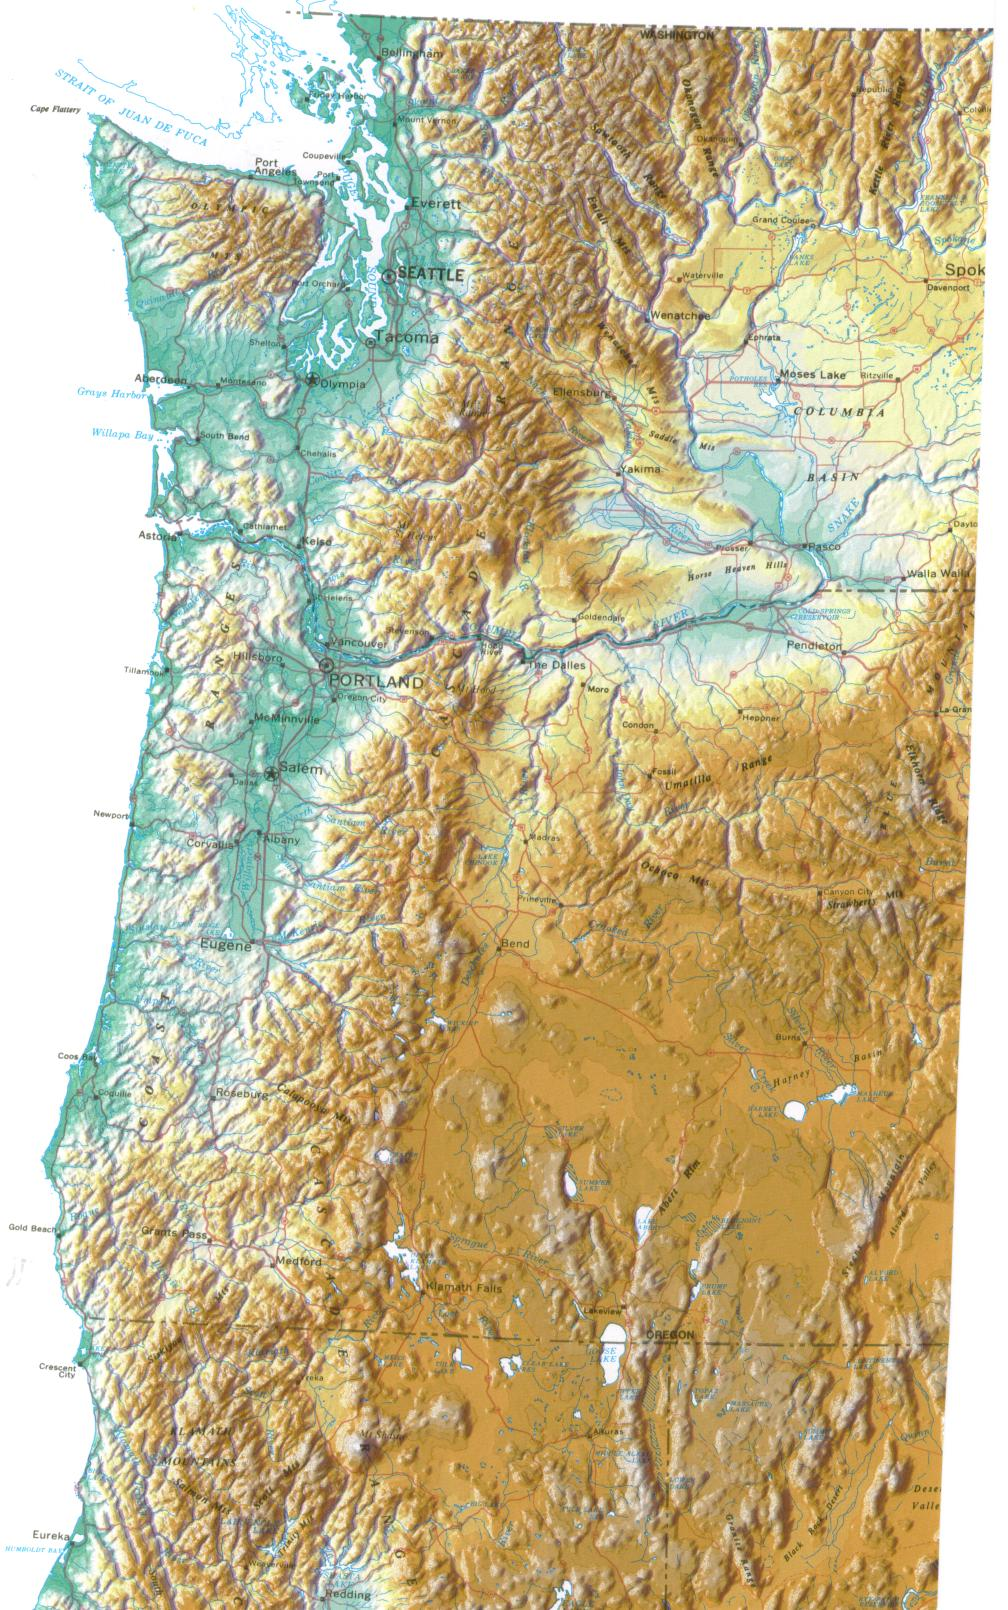 Maybe you're looking to explore the country and learn about it while you're planning for or dreaming about a trip. United States Topographic Wall Map By Raven Maps 37 X 58